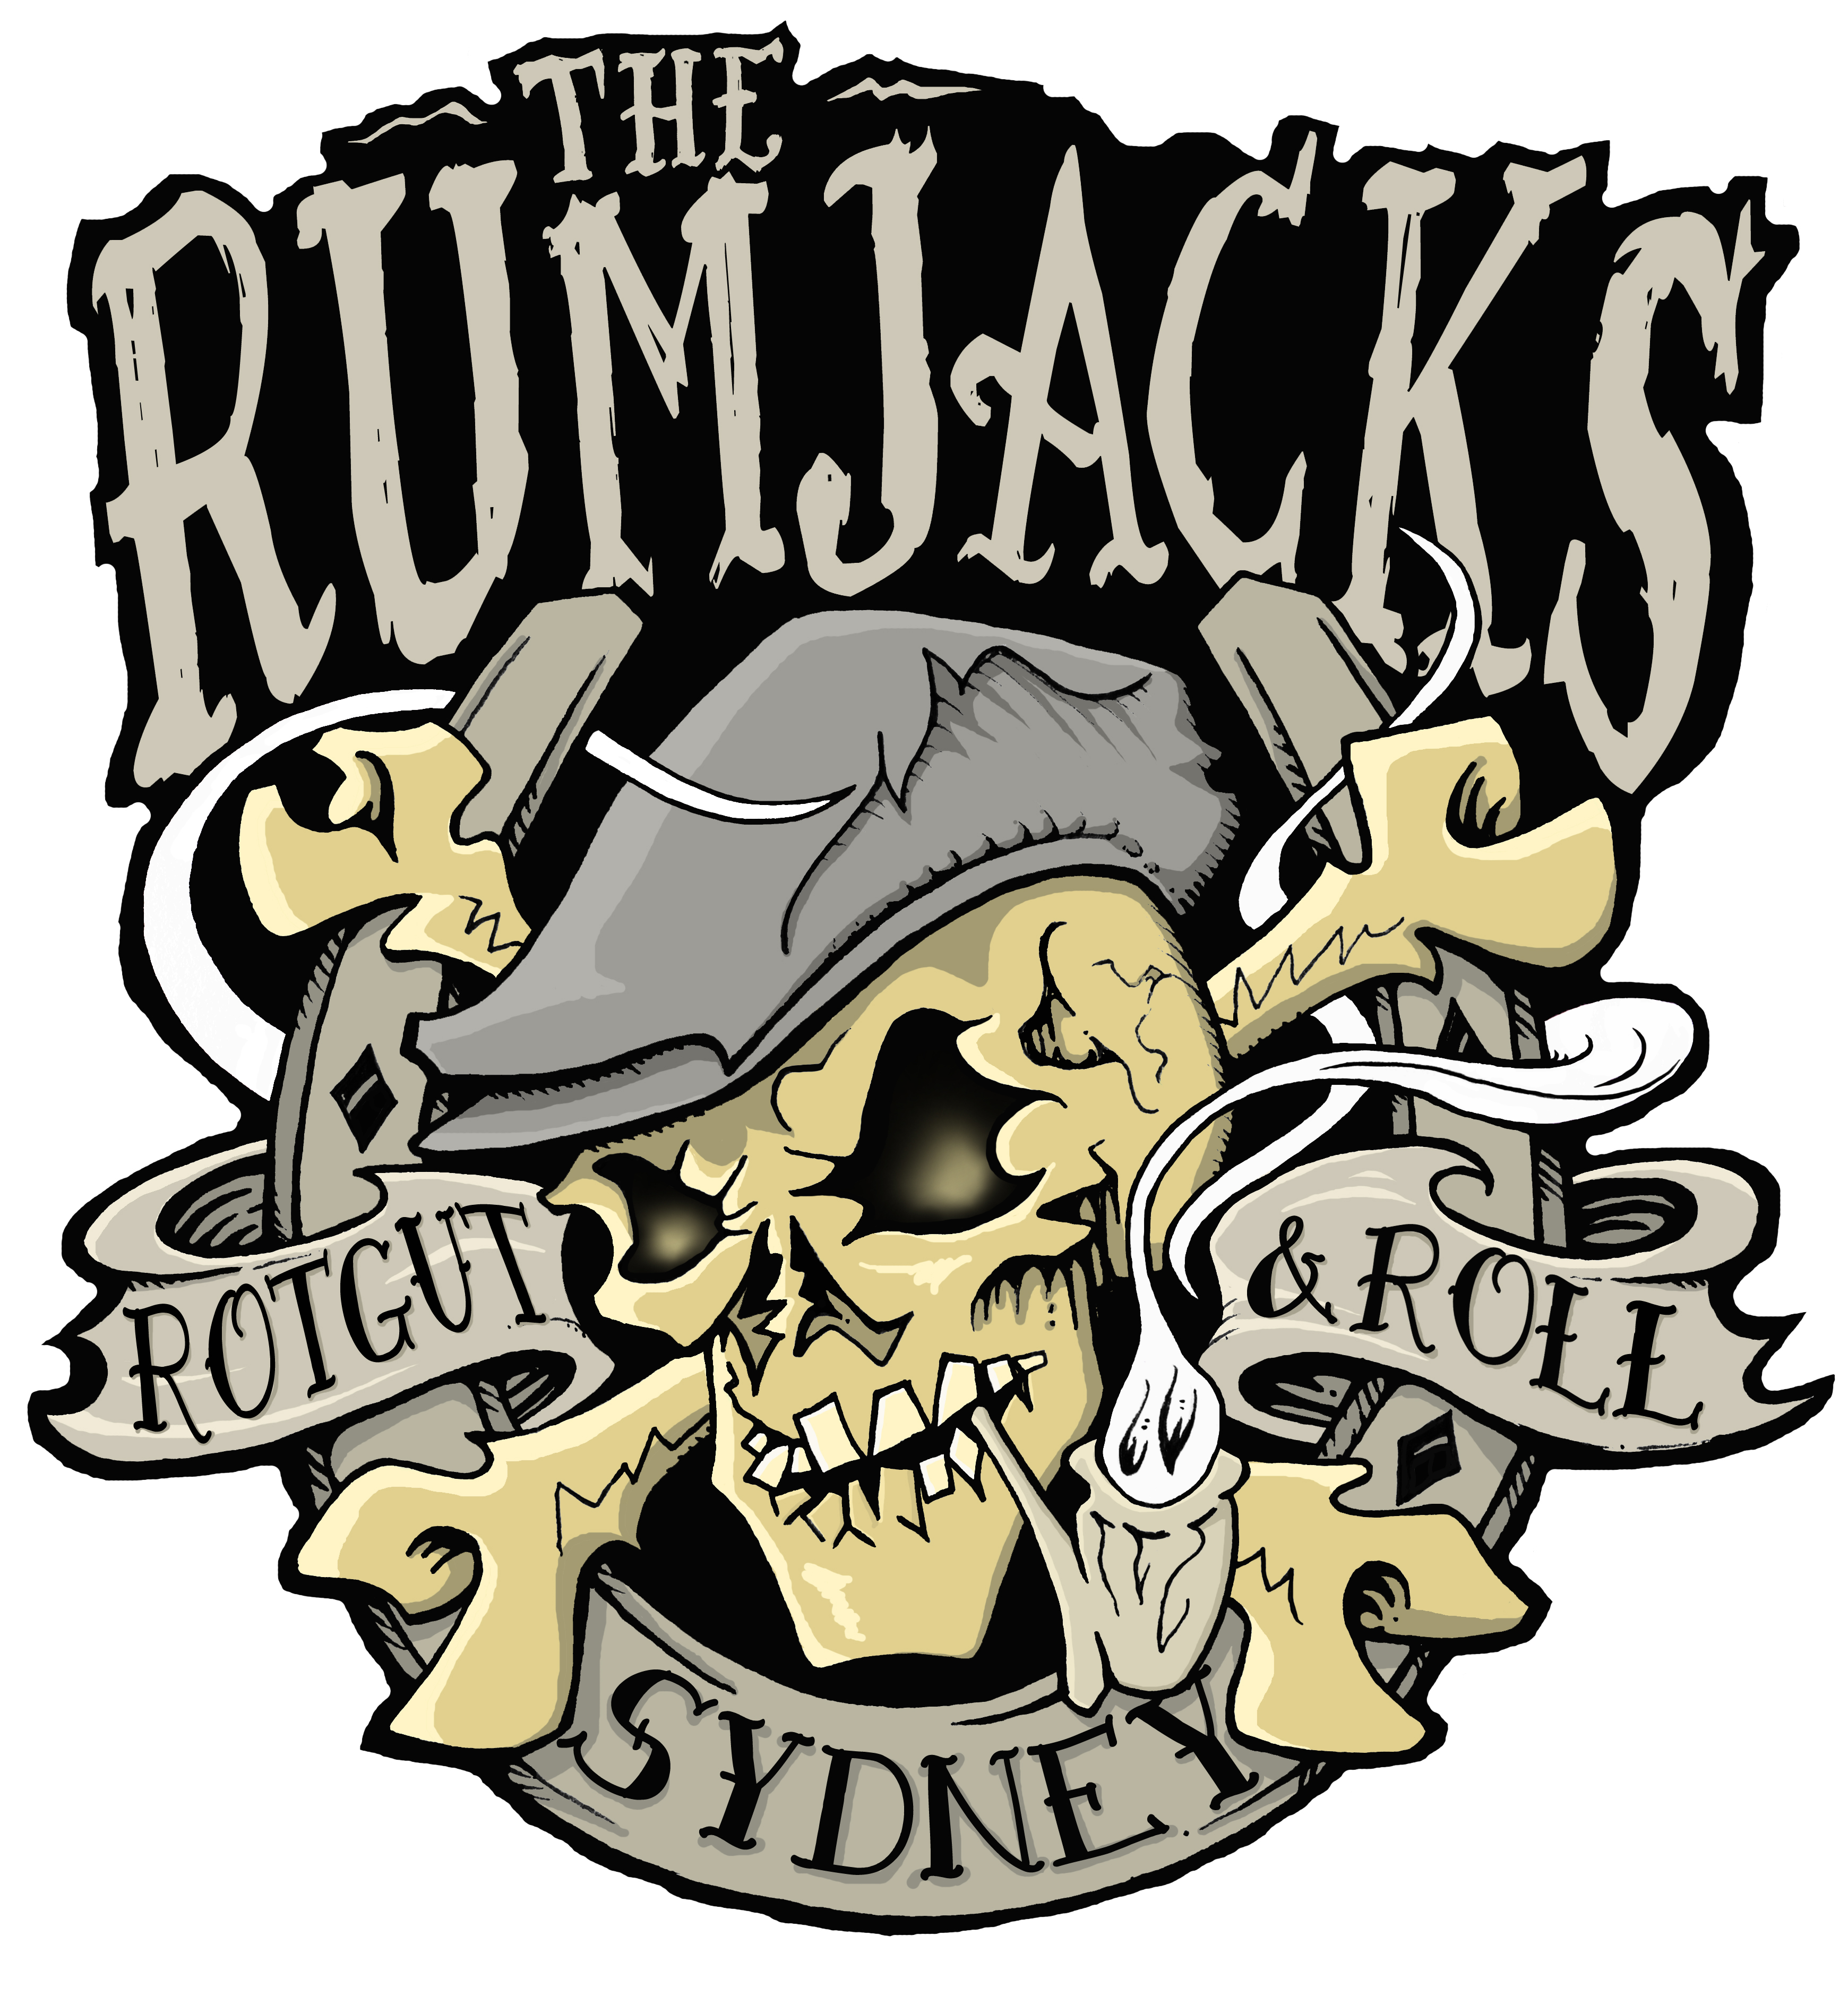 The Rumjacks